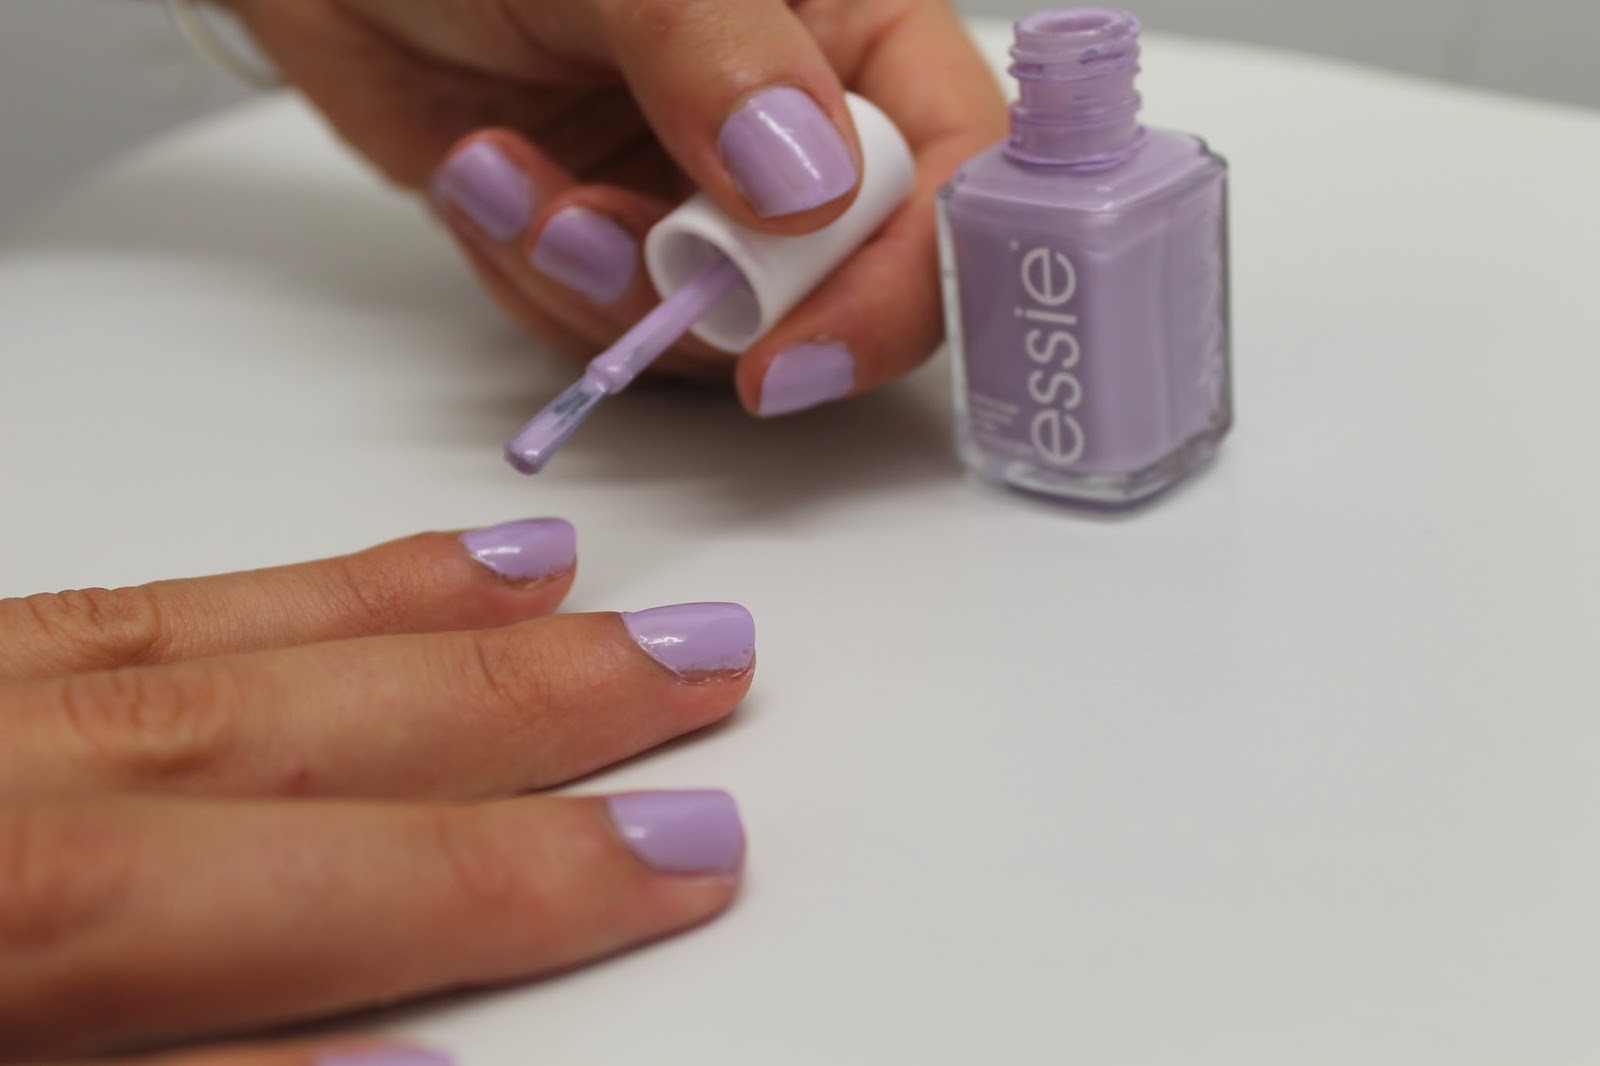 Fiocco Bianco: Under Where? Nail Polish by Essie review